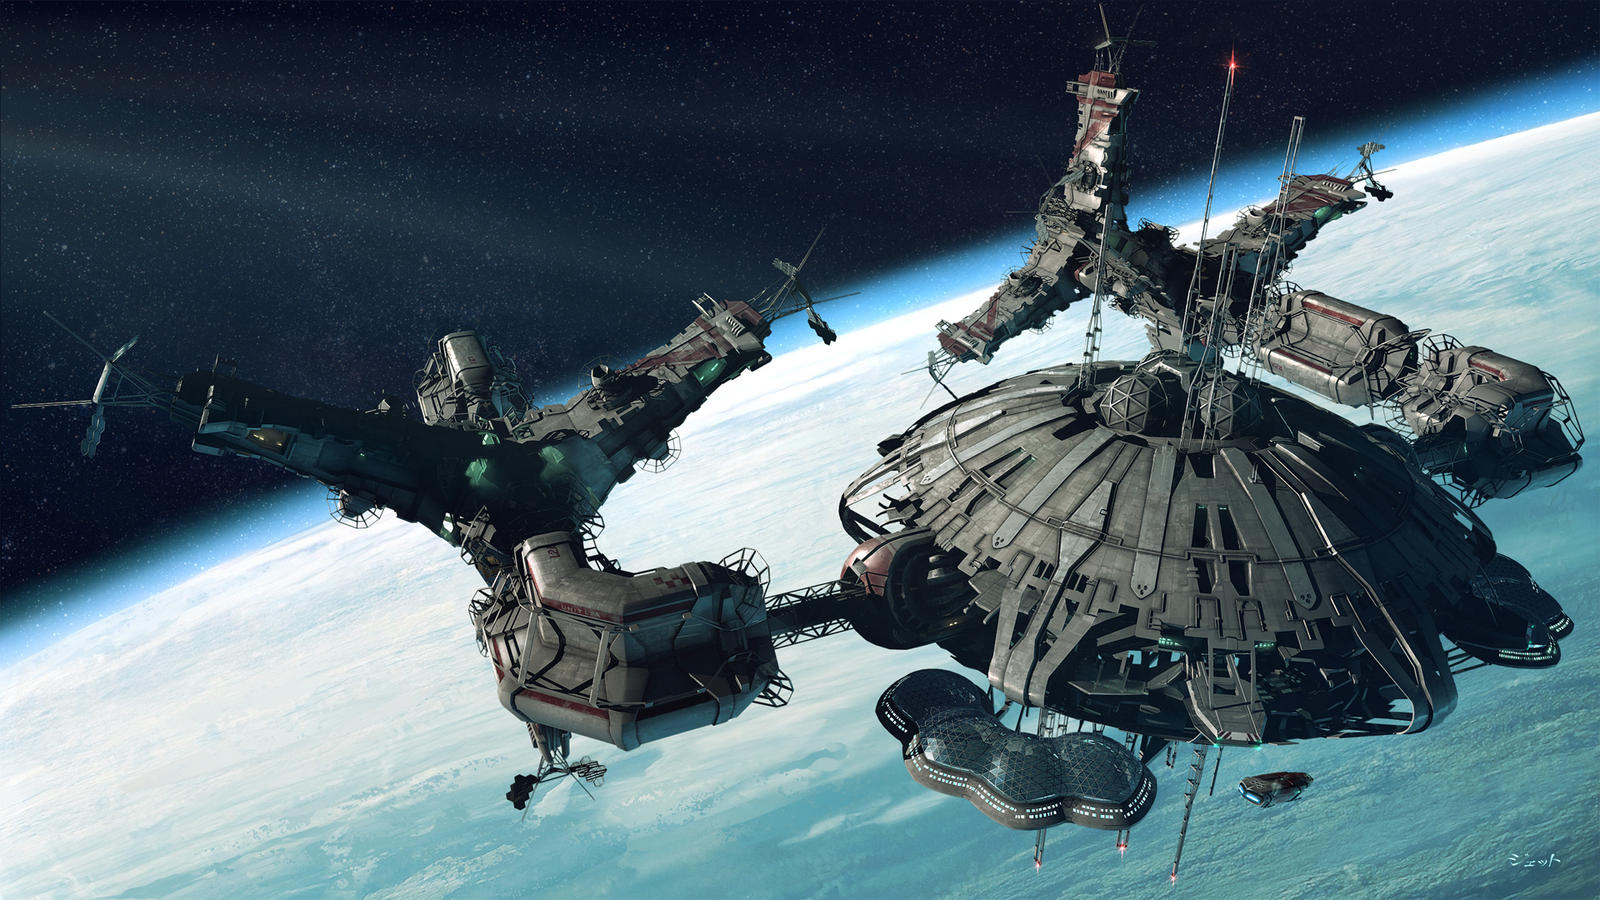 space station by Jett0 on DeviantArt